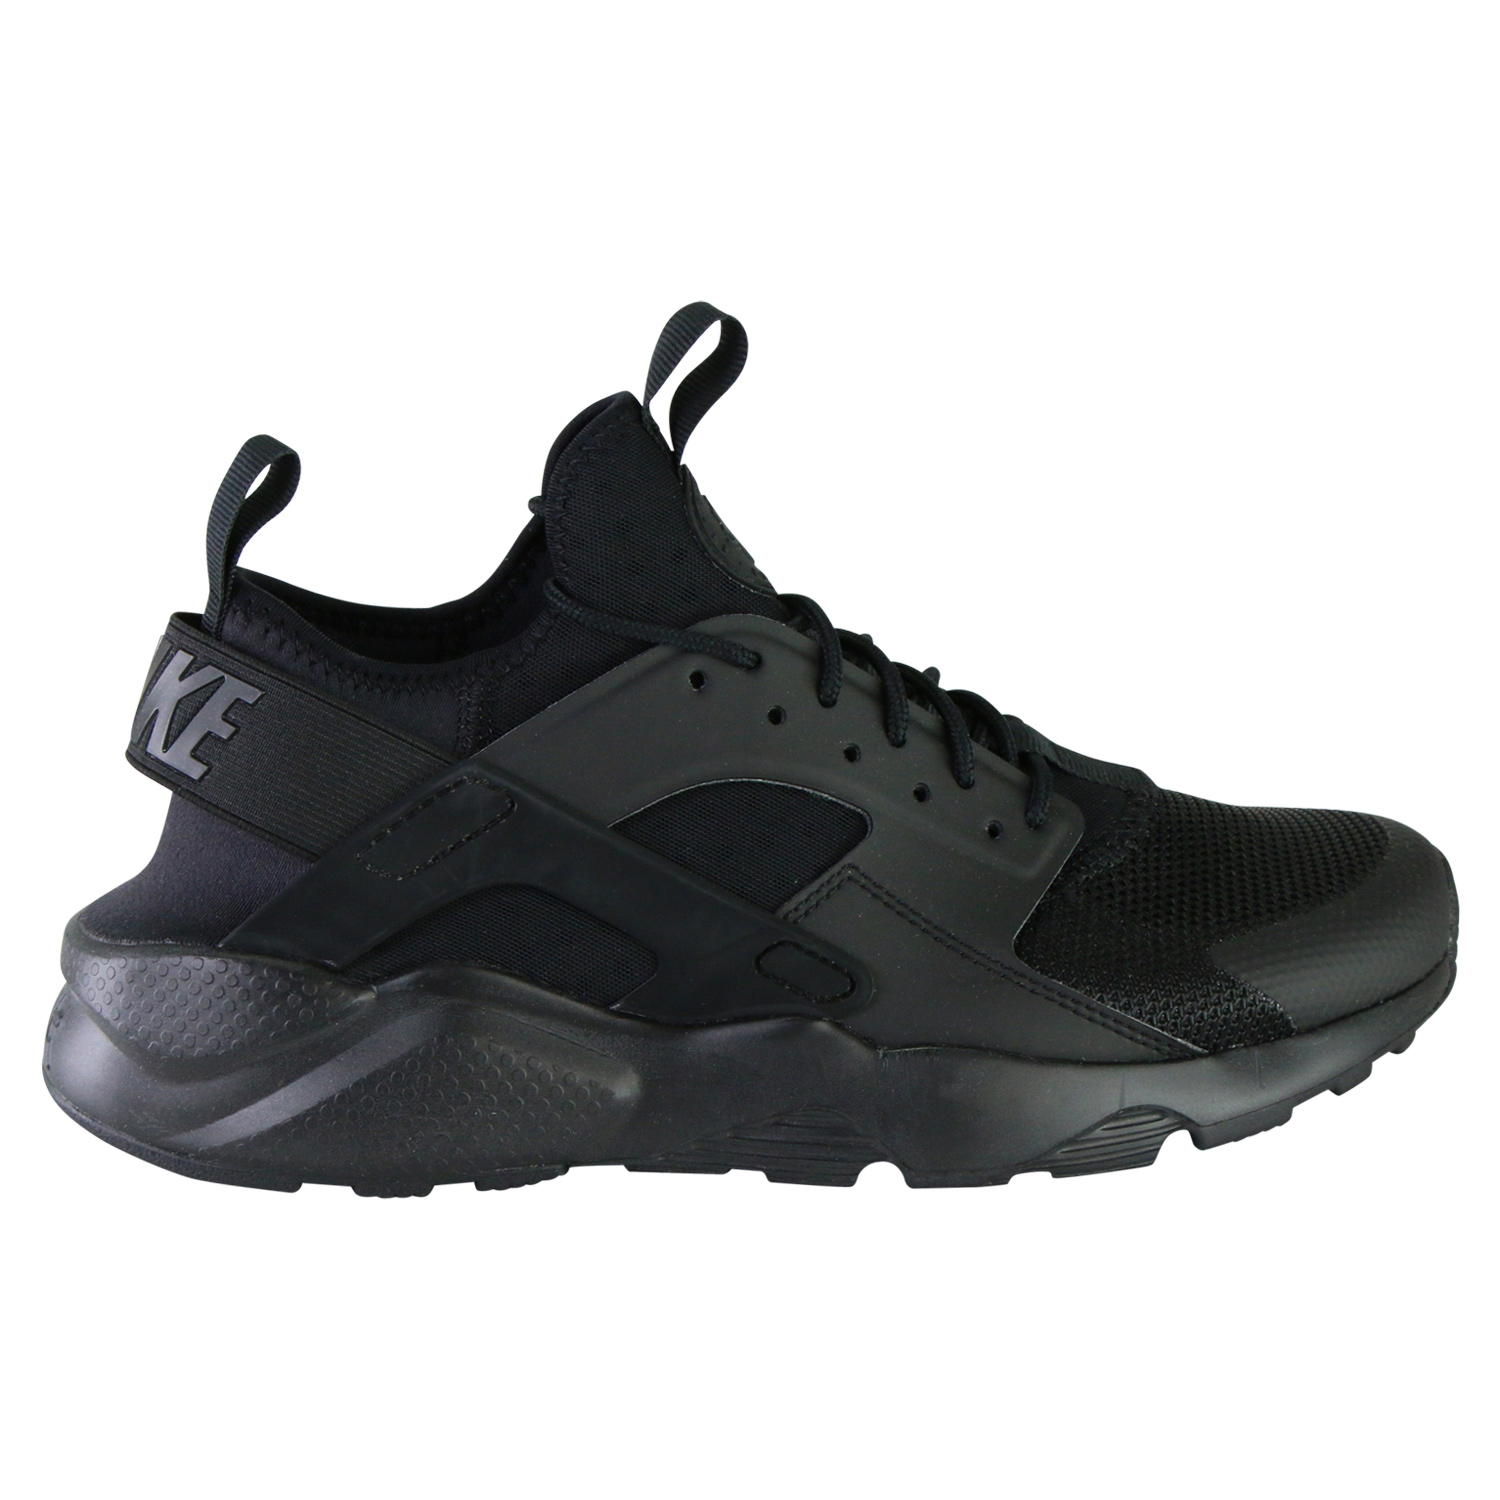 nike air huarache schuhe turnschuhe sneaker herren 318429. Black Bedroom Furniture Sets. Home Design Ideas